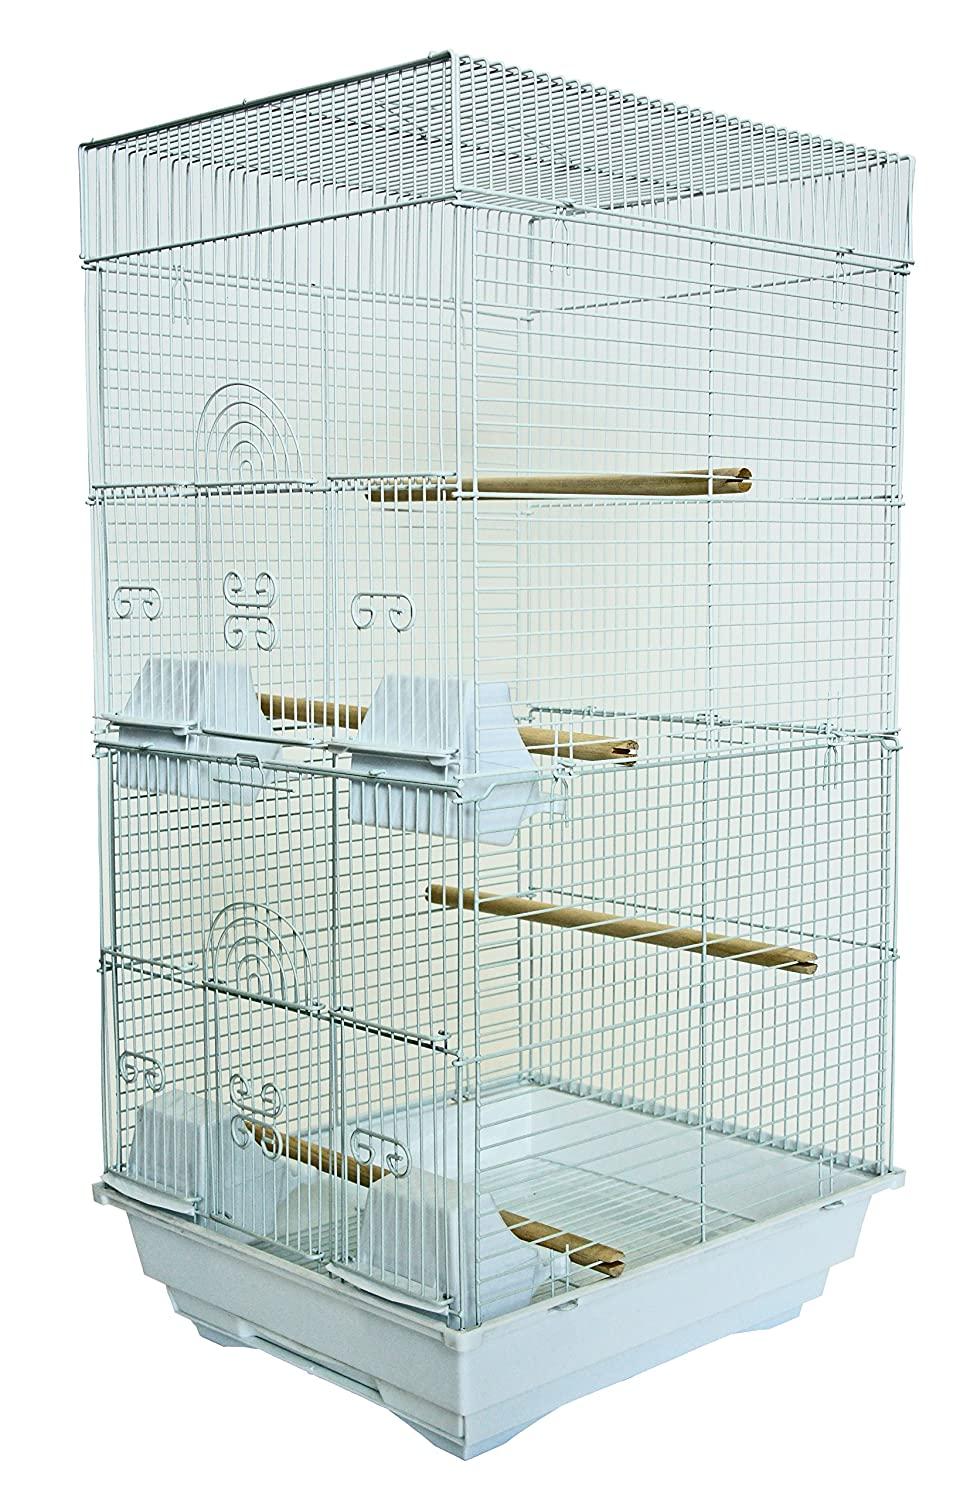 YML A6624 Bar Spacing Tall Square 4 Perchs Bird Cage, 14 x 16, White YML GROUP INC A6624WHT